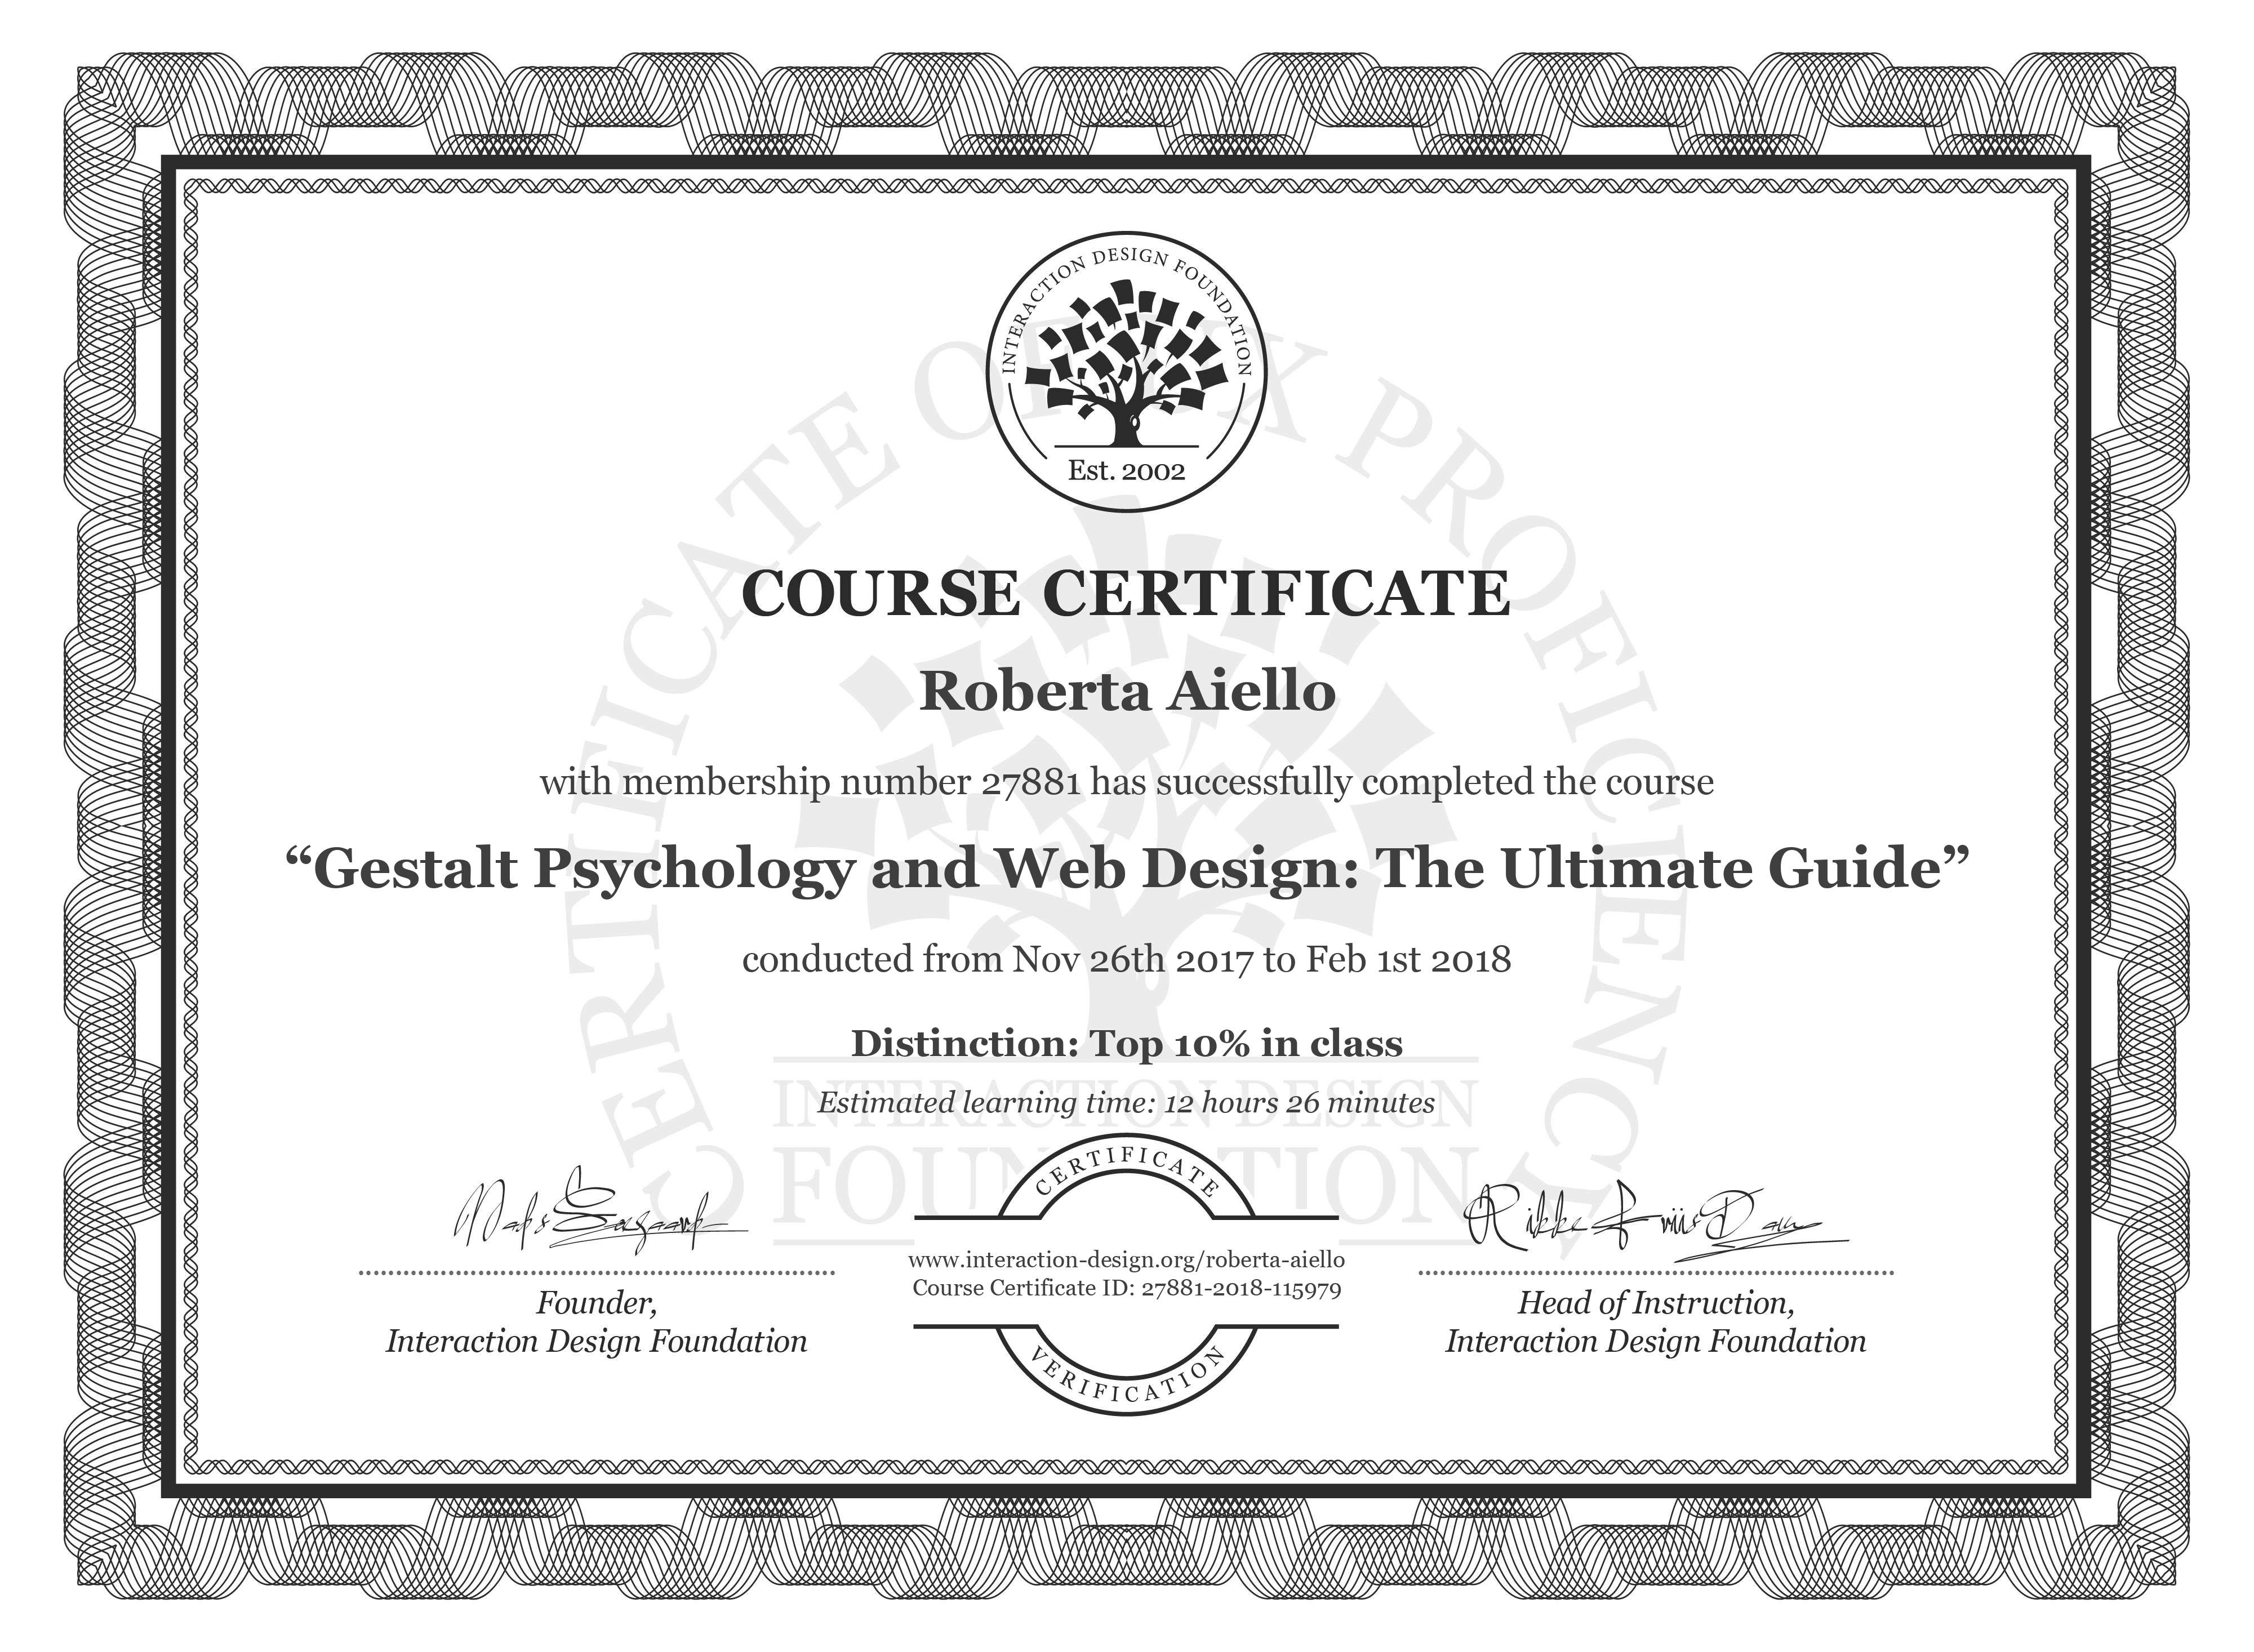 Roberta Aiello: Course Certificate - Gestalt Psychology and Web Design: The Ultimate Guide